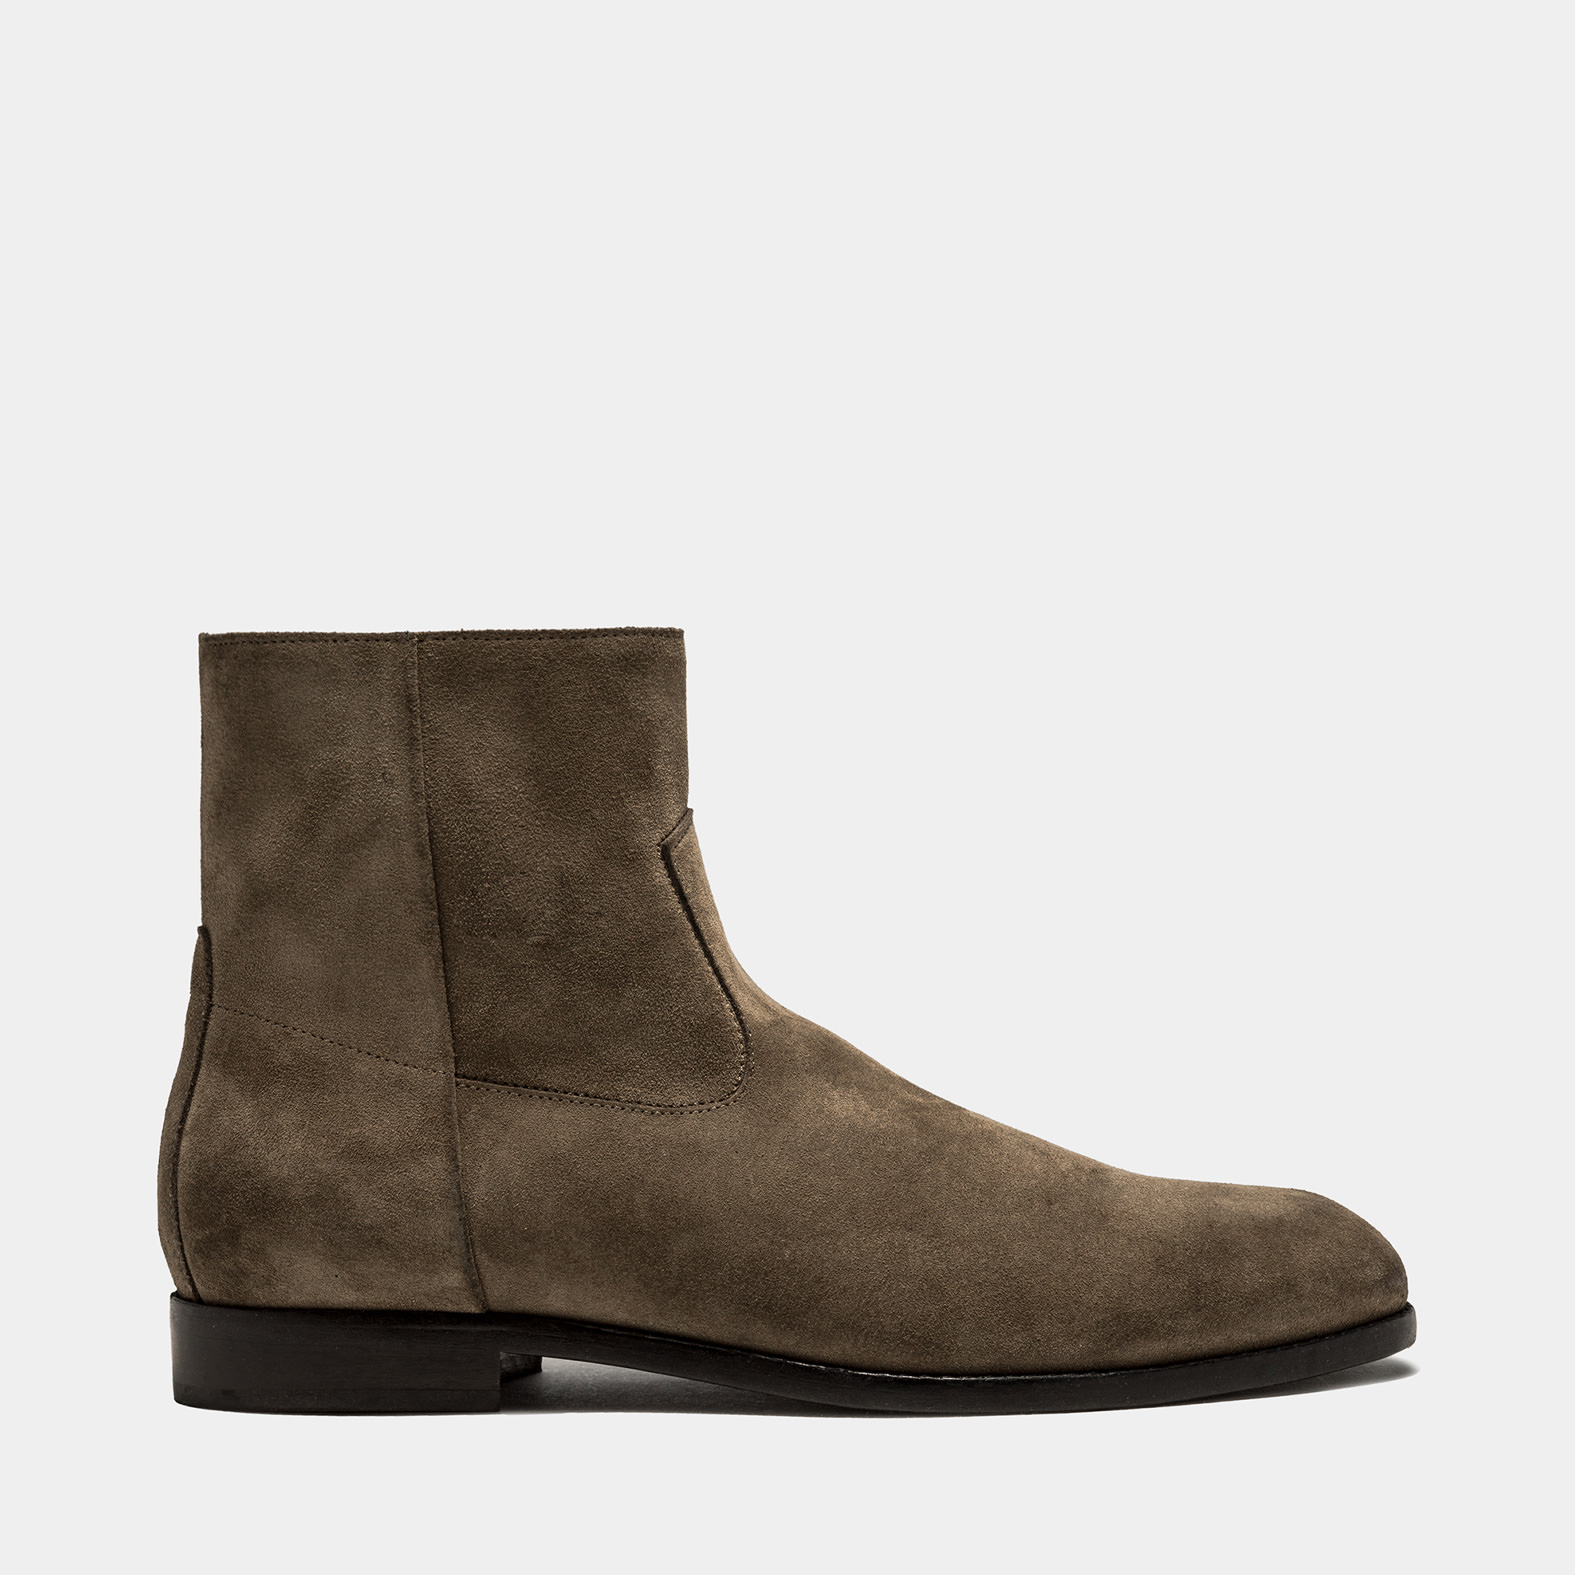 BUTTERO: FLOYD ANKLE BOOTS IN FOREST GREEN SUEDE